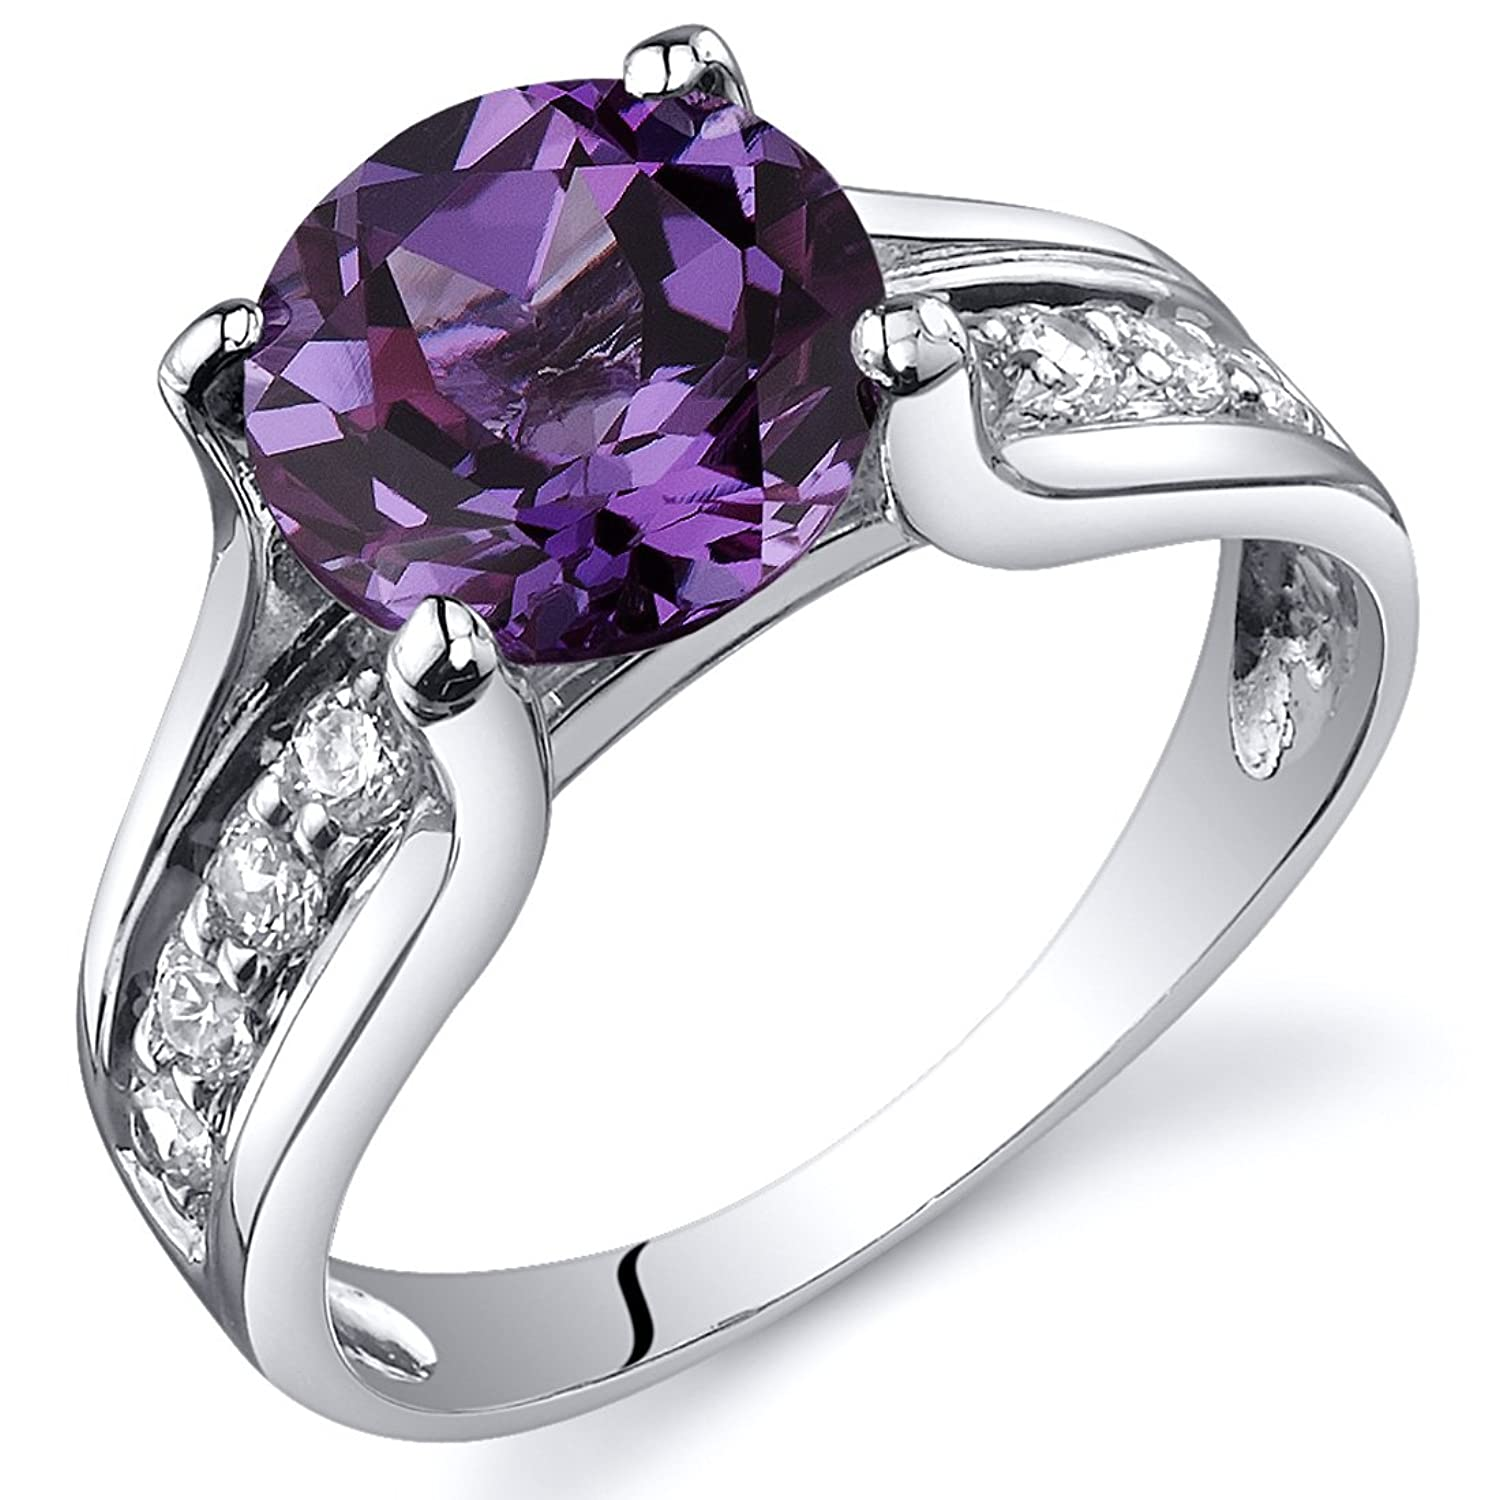 amazoncom simulated alexandrite solitaire ring sterling silver rhodium nickel finish sizes 5 to 9 alexandrite jewelry jewelry - Alexandrite Wedding Ring